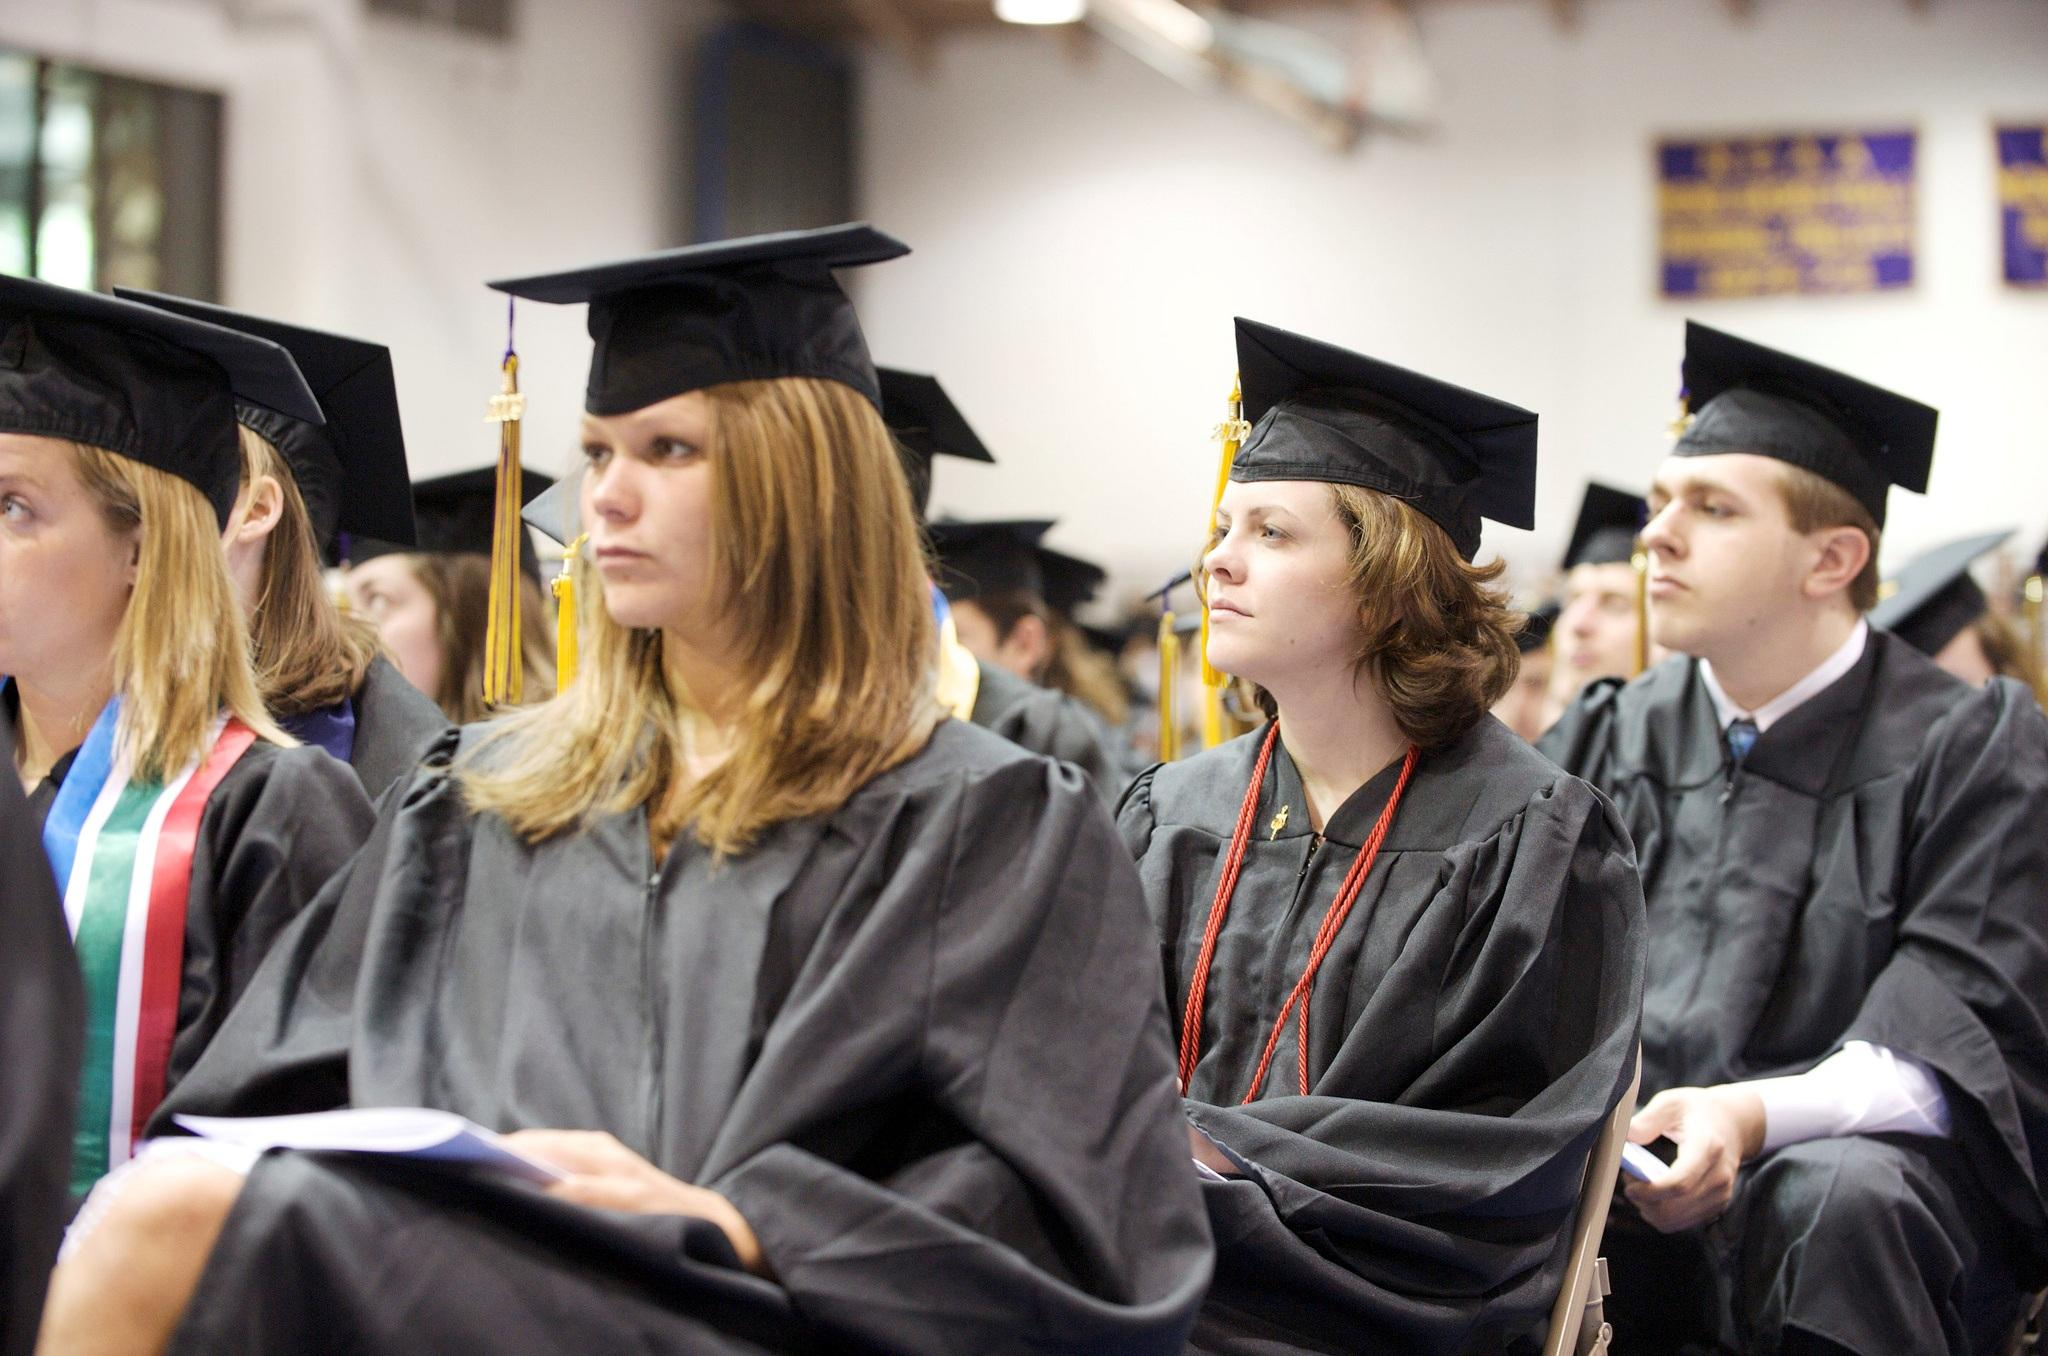 Ohio's High School Graduation Rate Continues to Fall